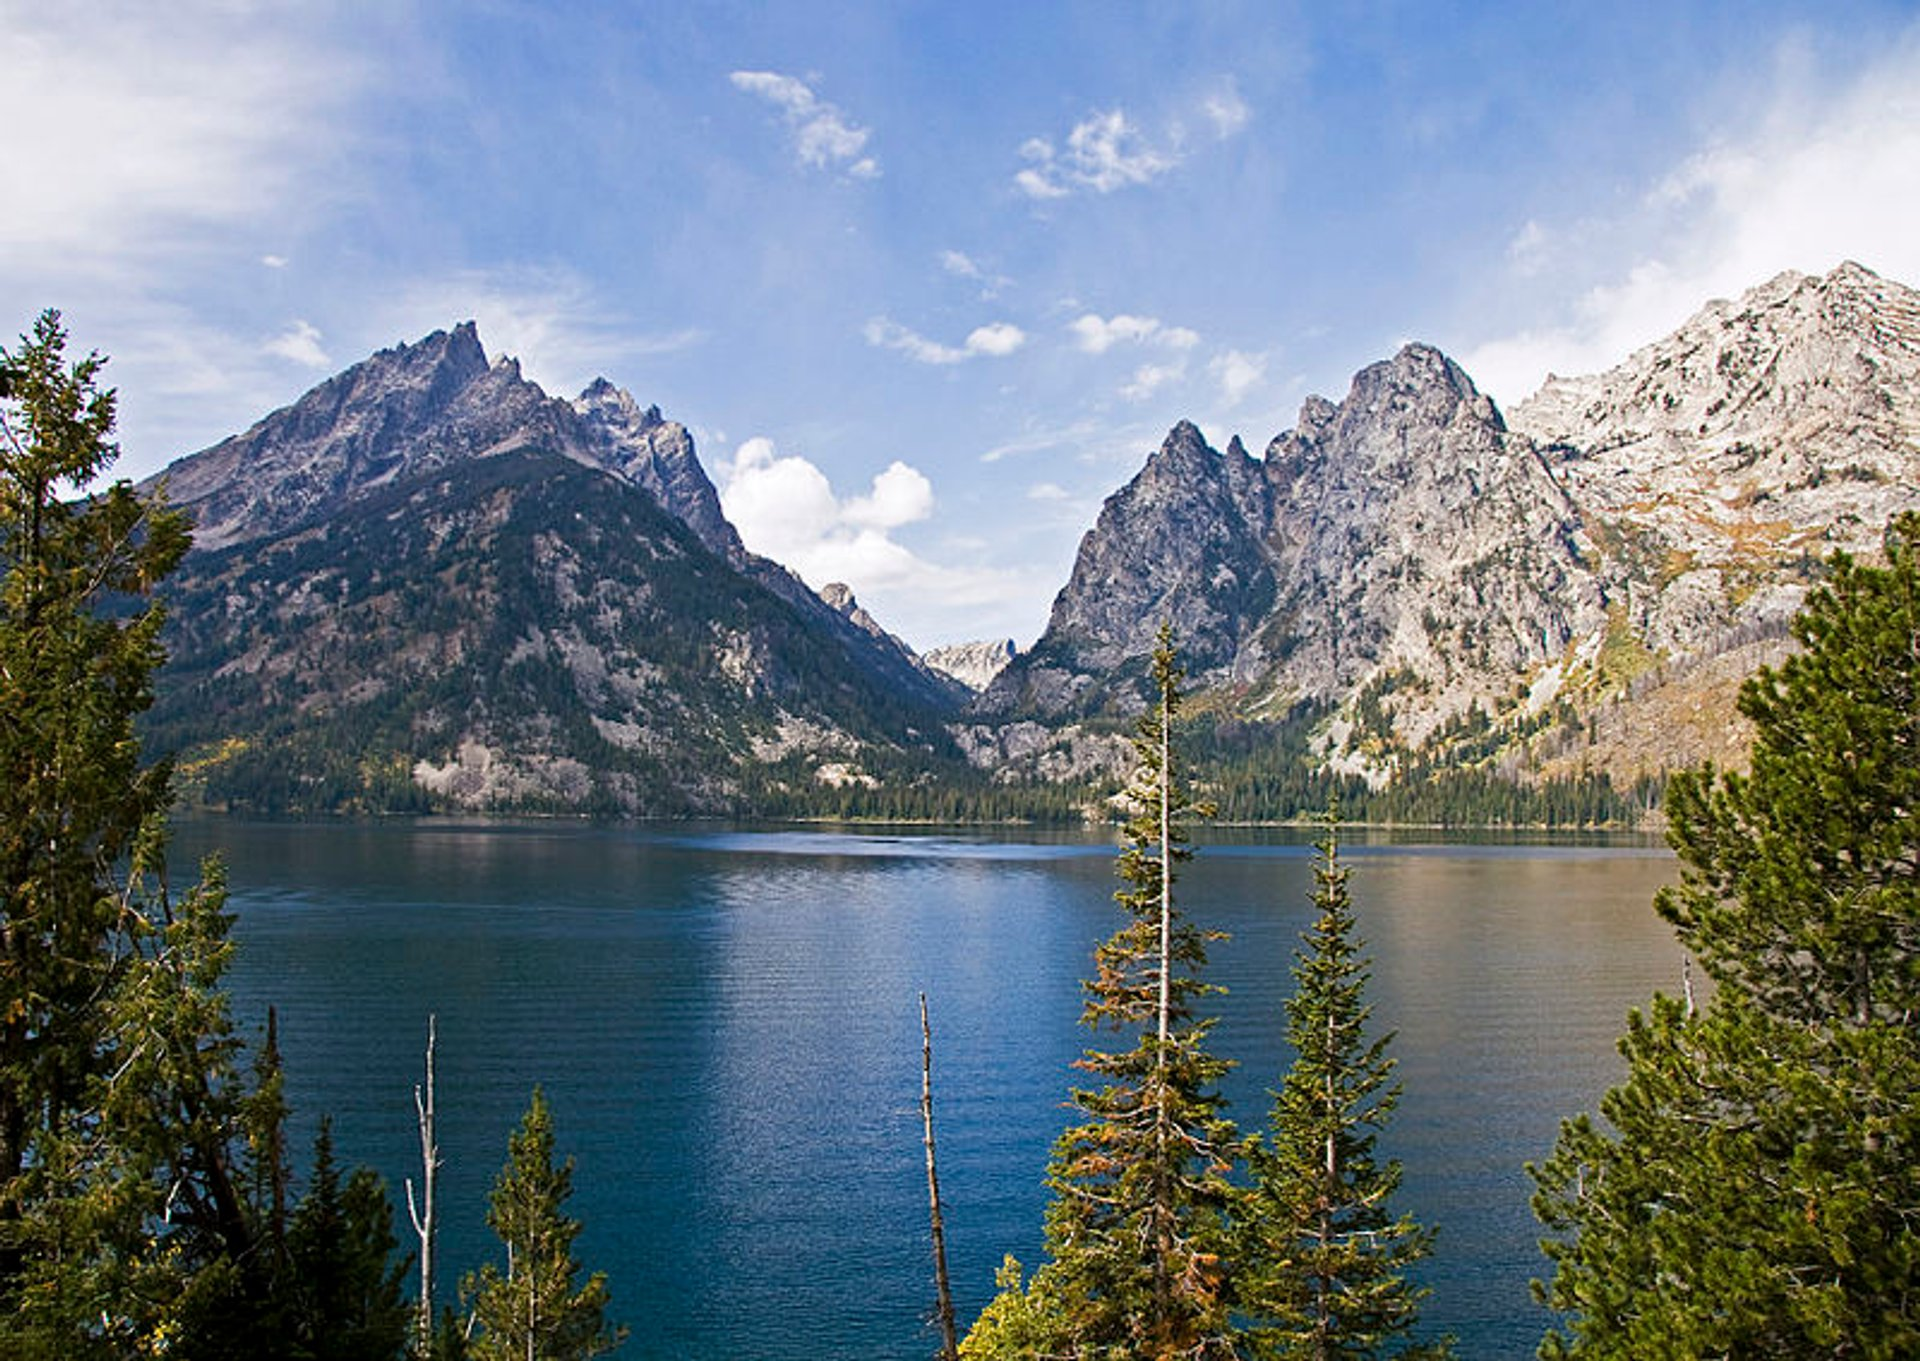 Jenny Lake in Wyoming 2020 - Best Time